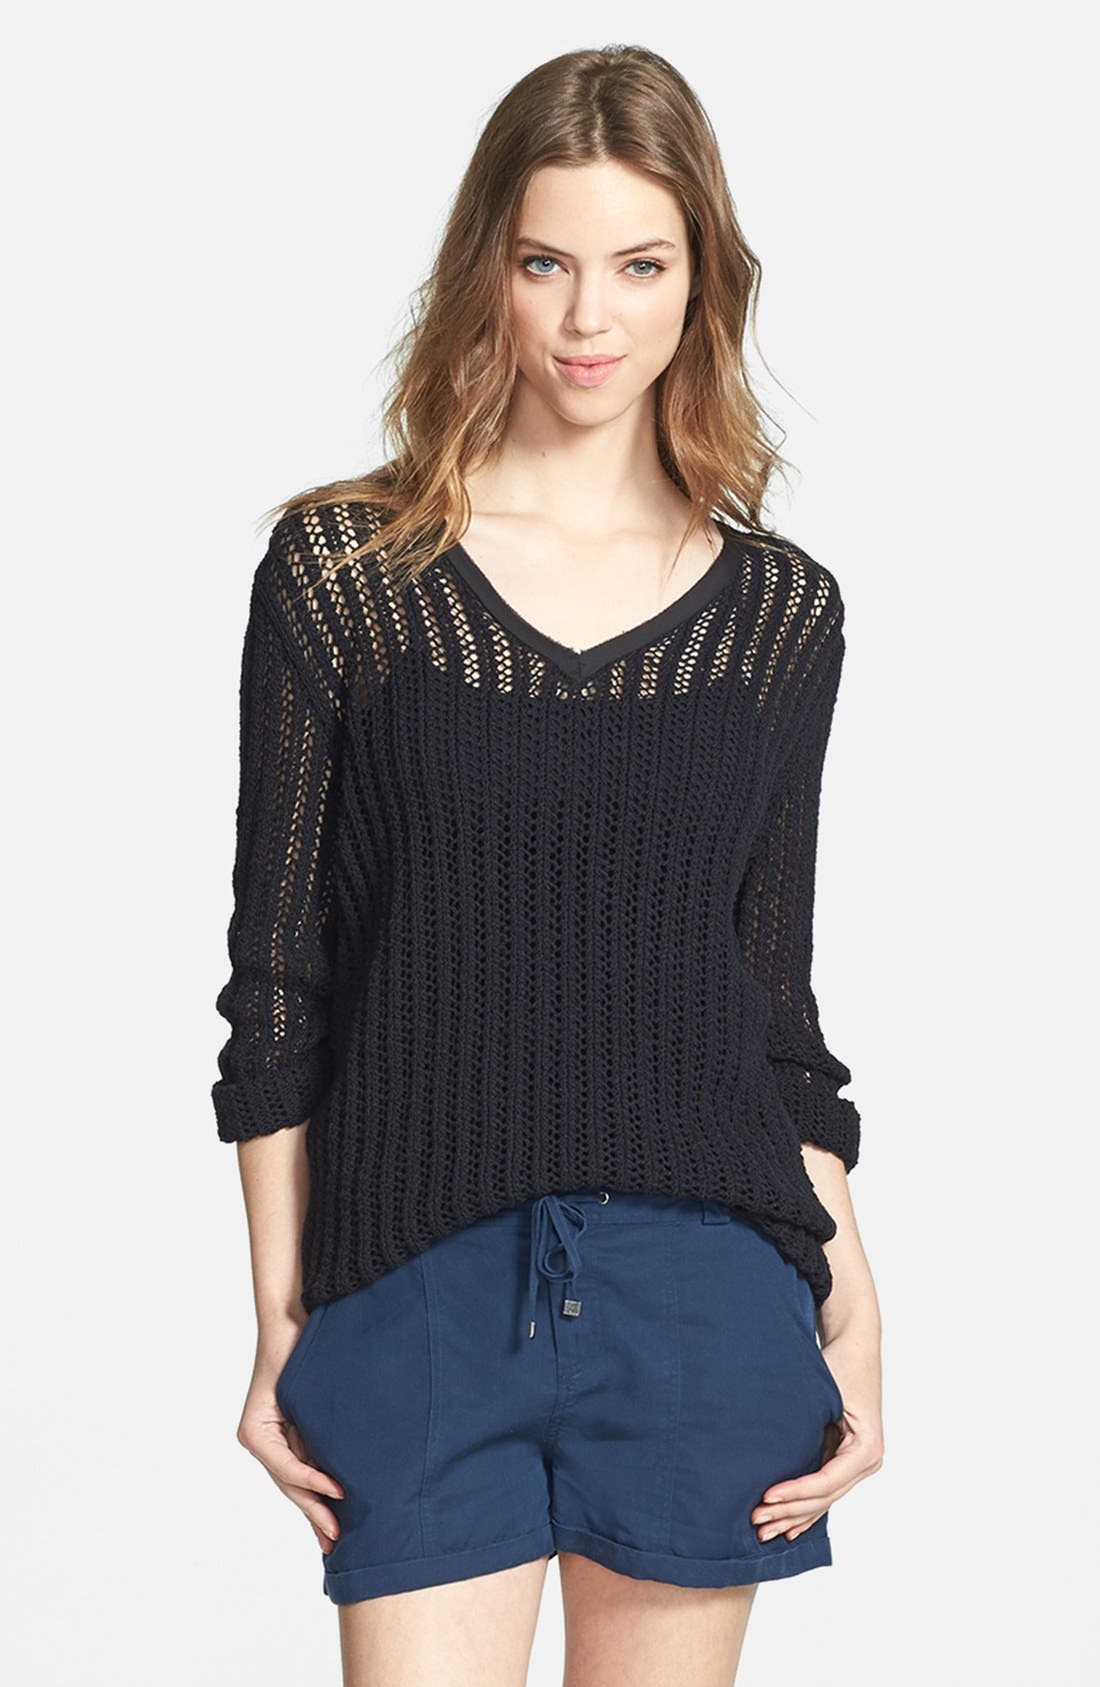 Alternate Image 1 Selected - Two by Vince Camuto Mesh Stitch V-Neck Sweater